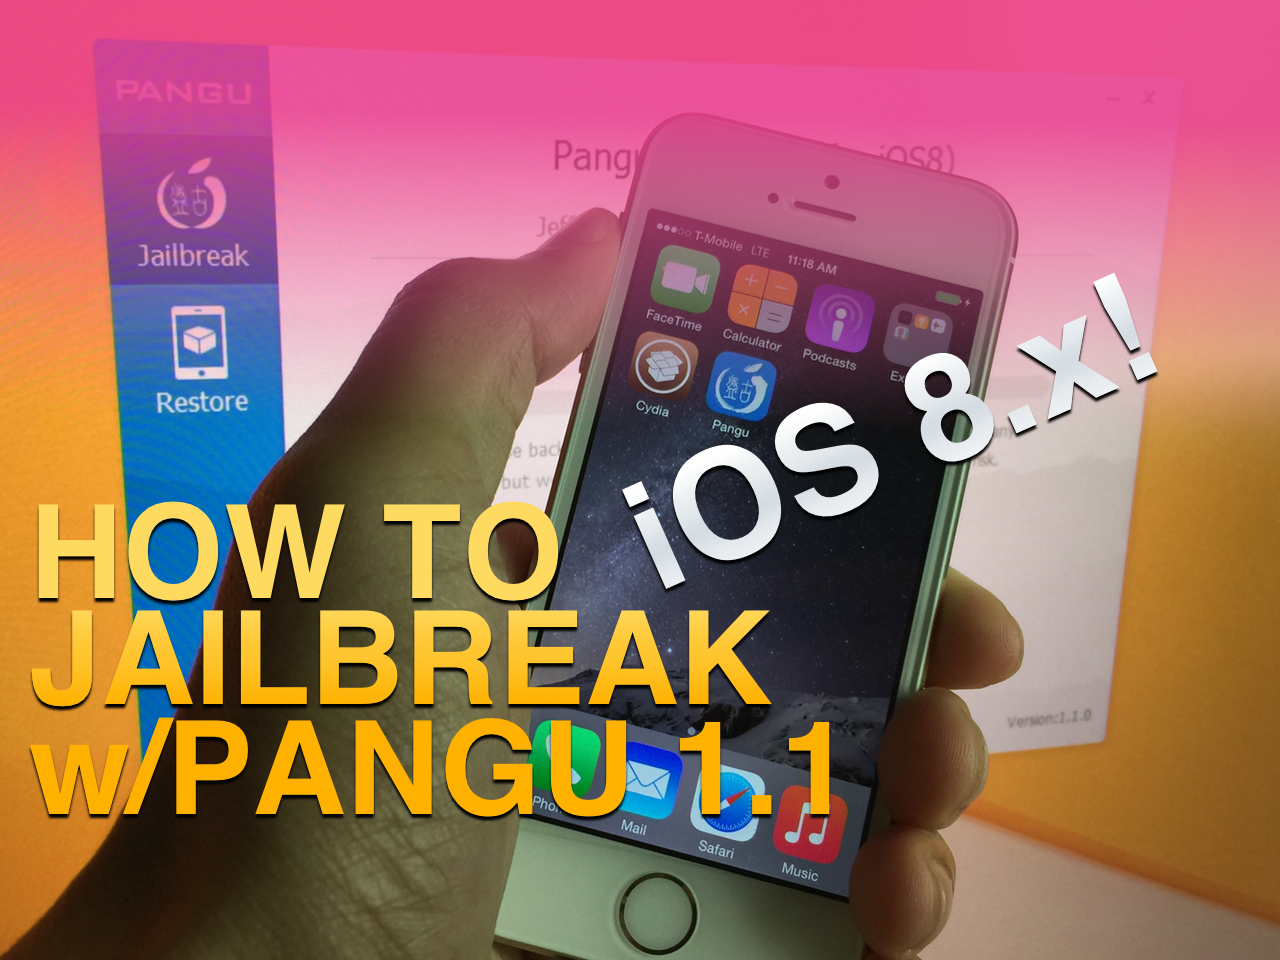 How to jailbreak iOS 8 and install Cydia using Pangu 1.1.0 on Windows